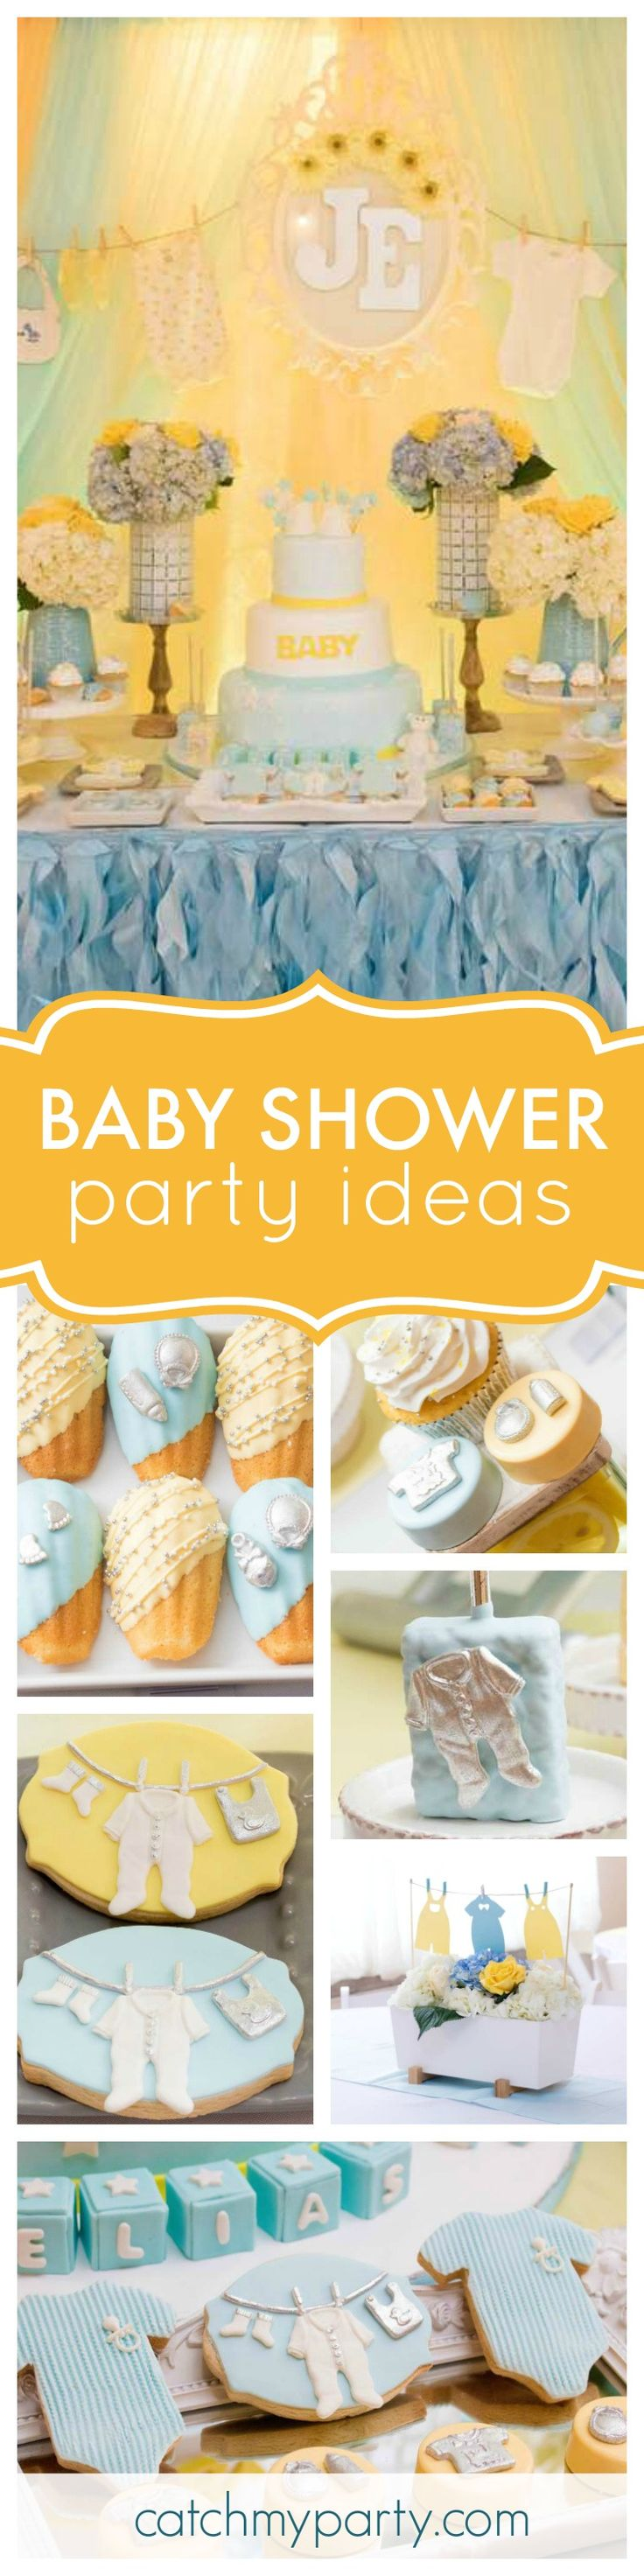 Check out this gorgeous Clothesline Baby Shower. The dessert table will blow your mind! See more party ideas and share yours at CatchMyParty.com